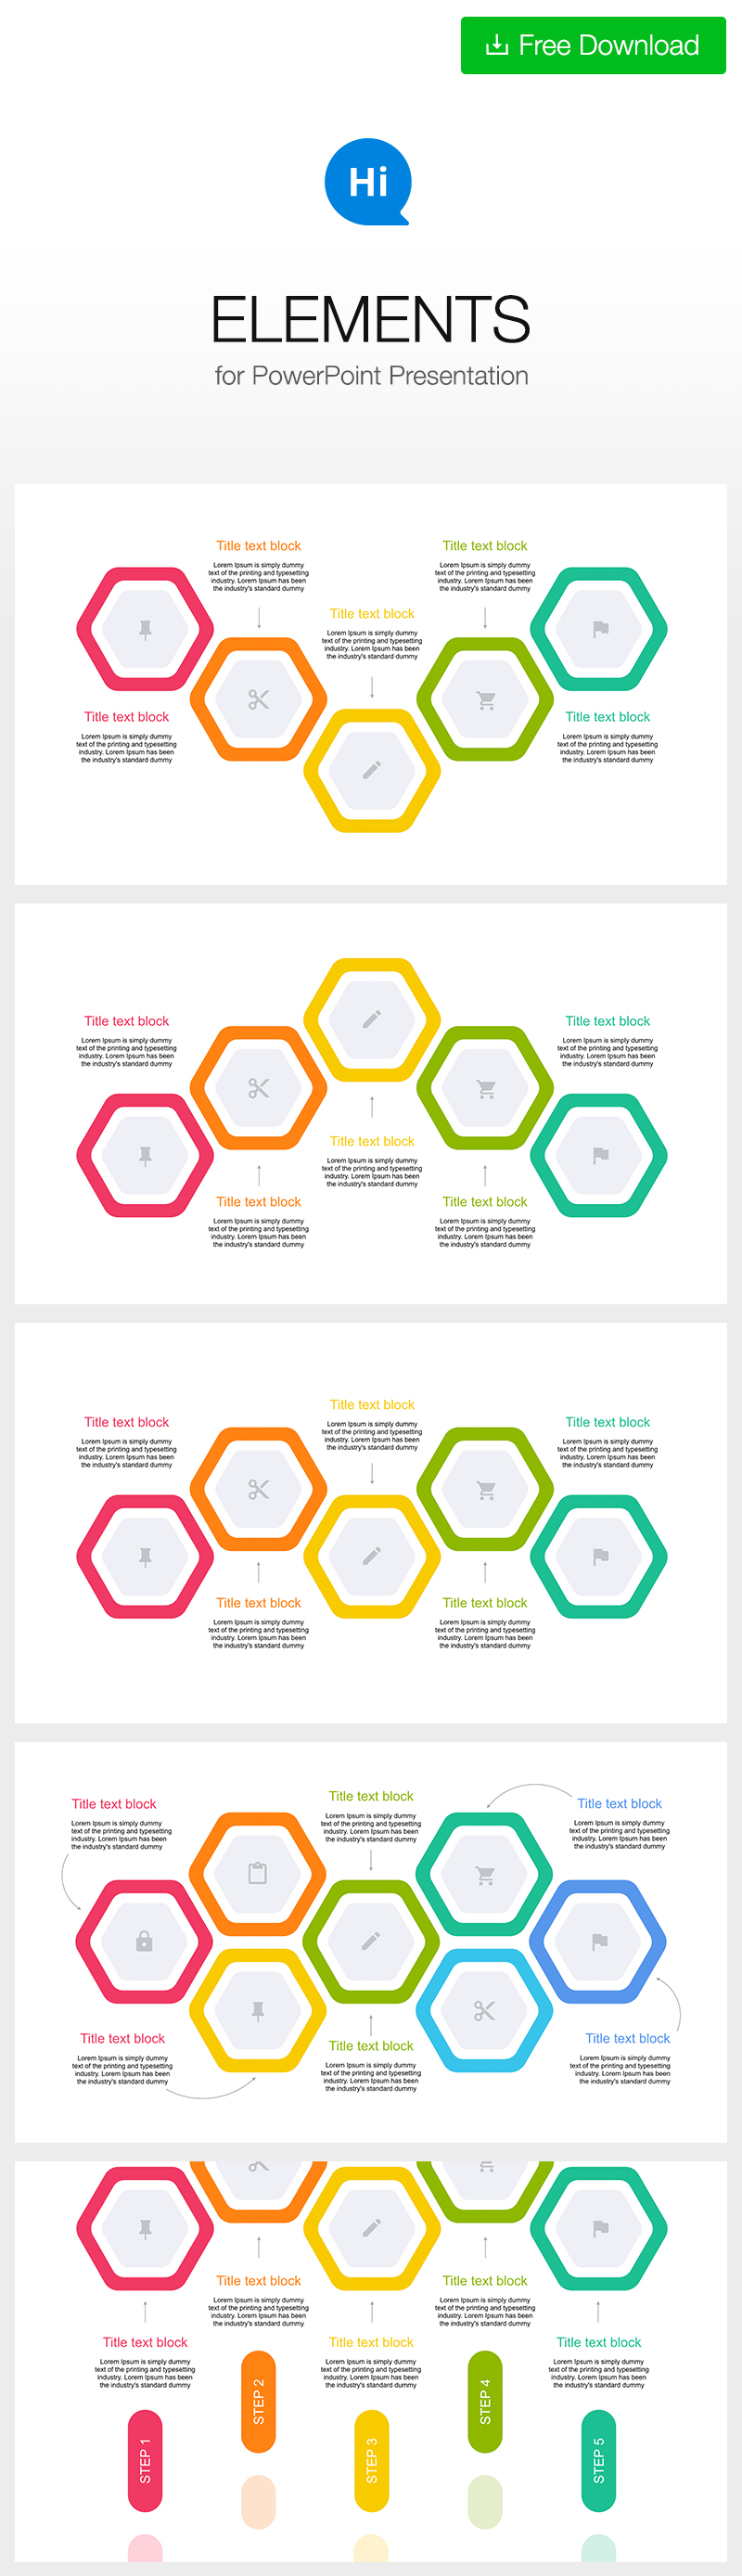 #polygon #hexagon #infographic for #powerpoint #ppt DOWLOAD #free https://hislide.io/product/hexagon-diagram-5-step-powerpoint/ #timeline